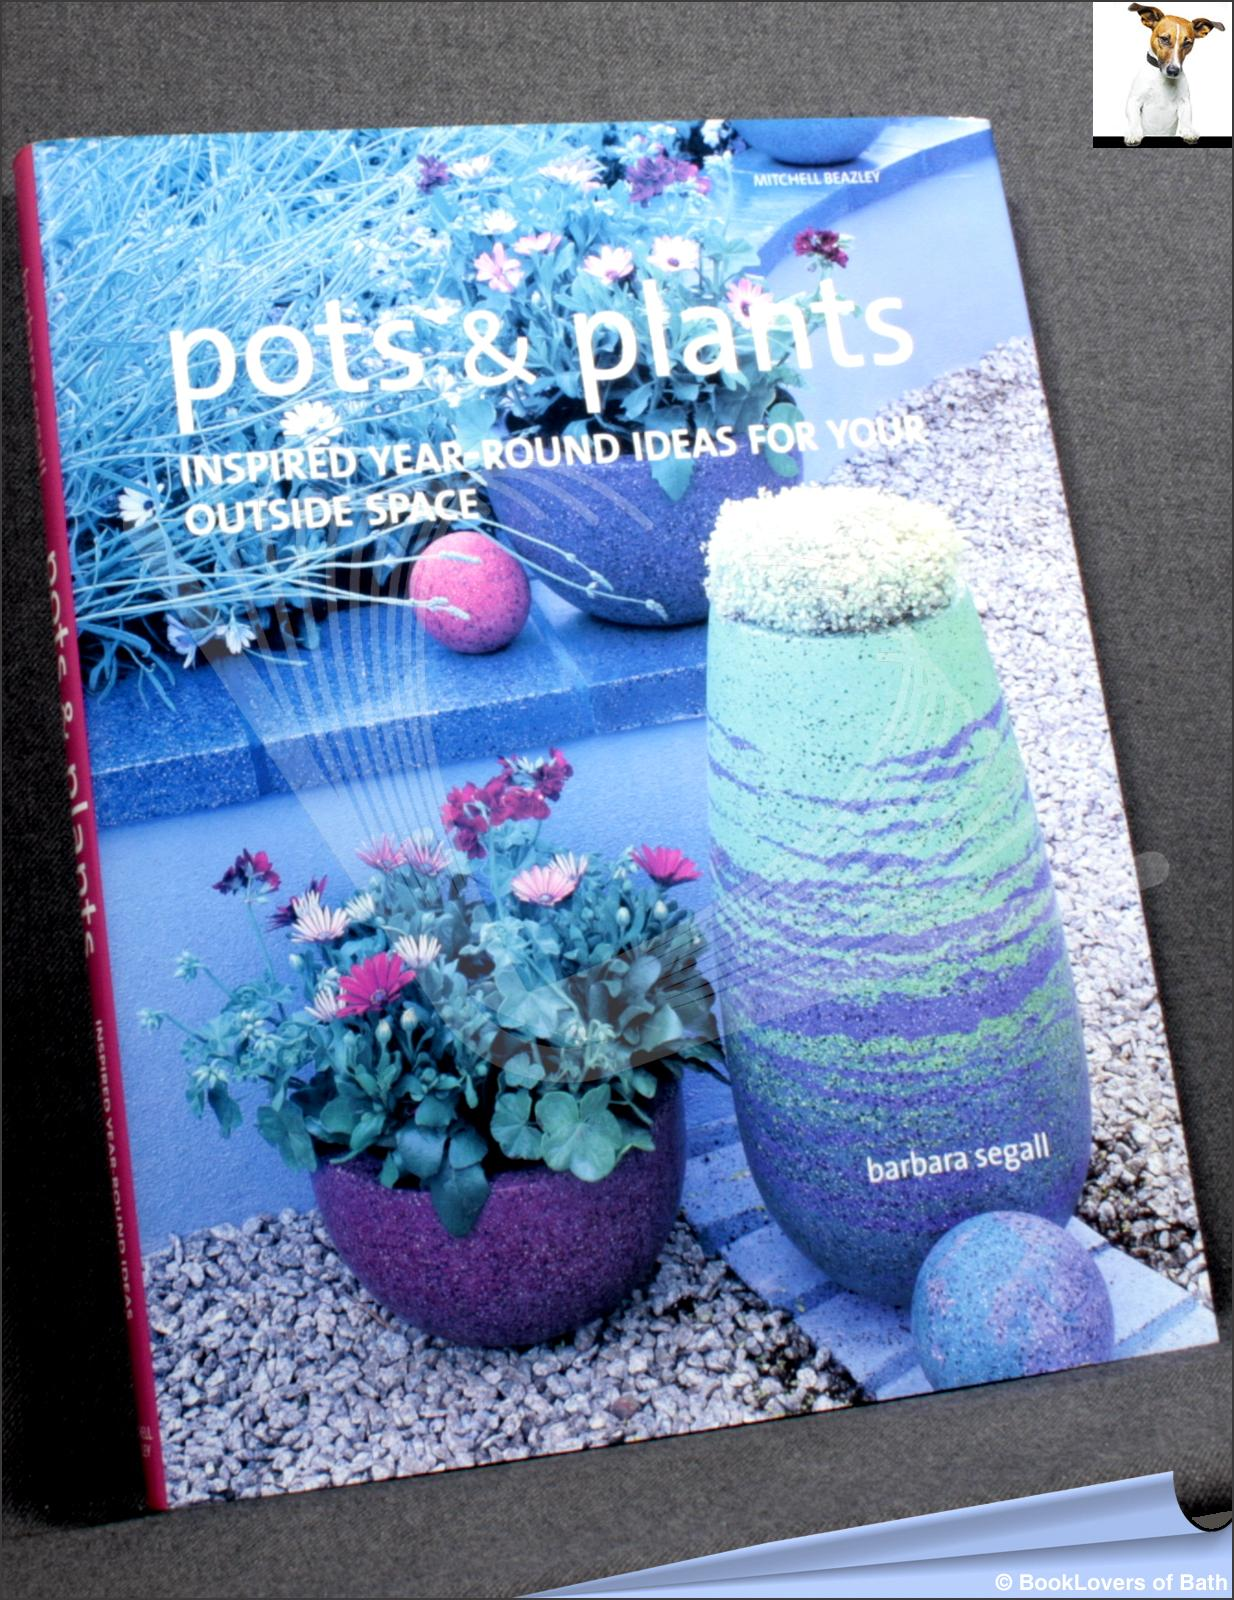 Pots & Plants: Inspired Year-round Ideas for Your Outside Space - Barbara Segall